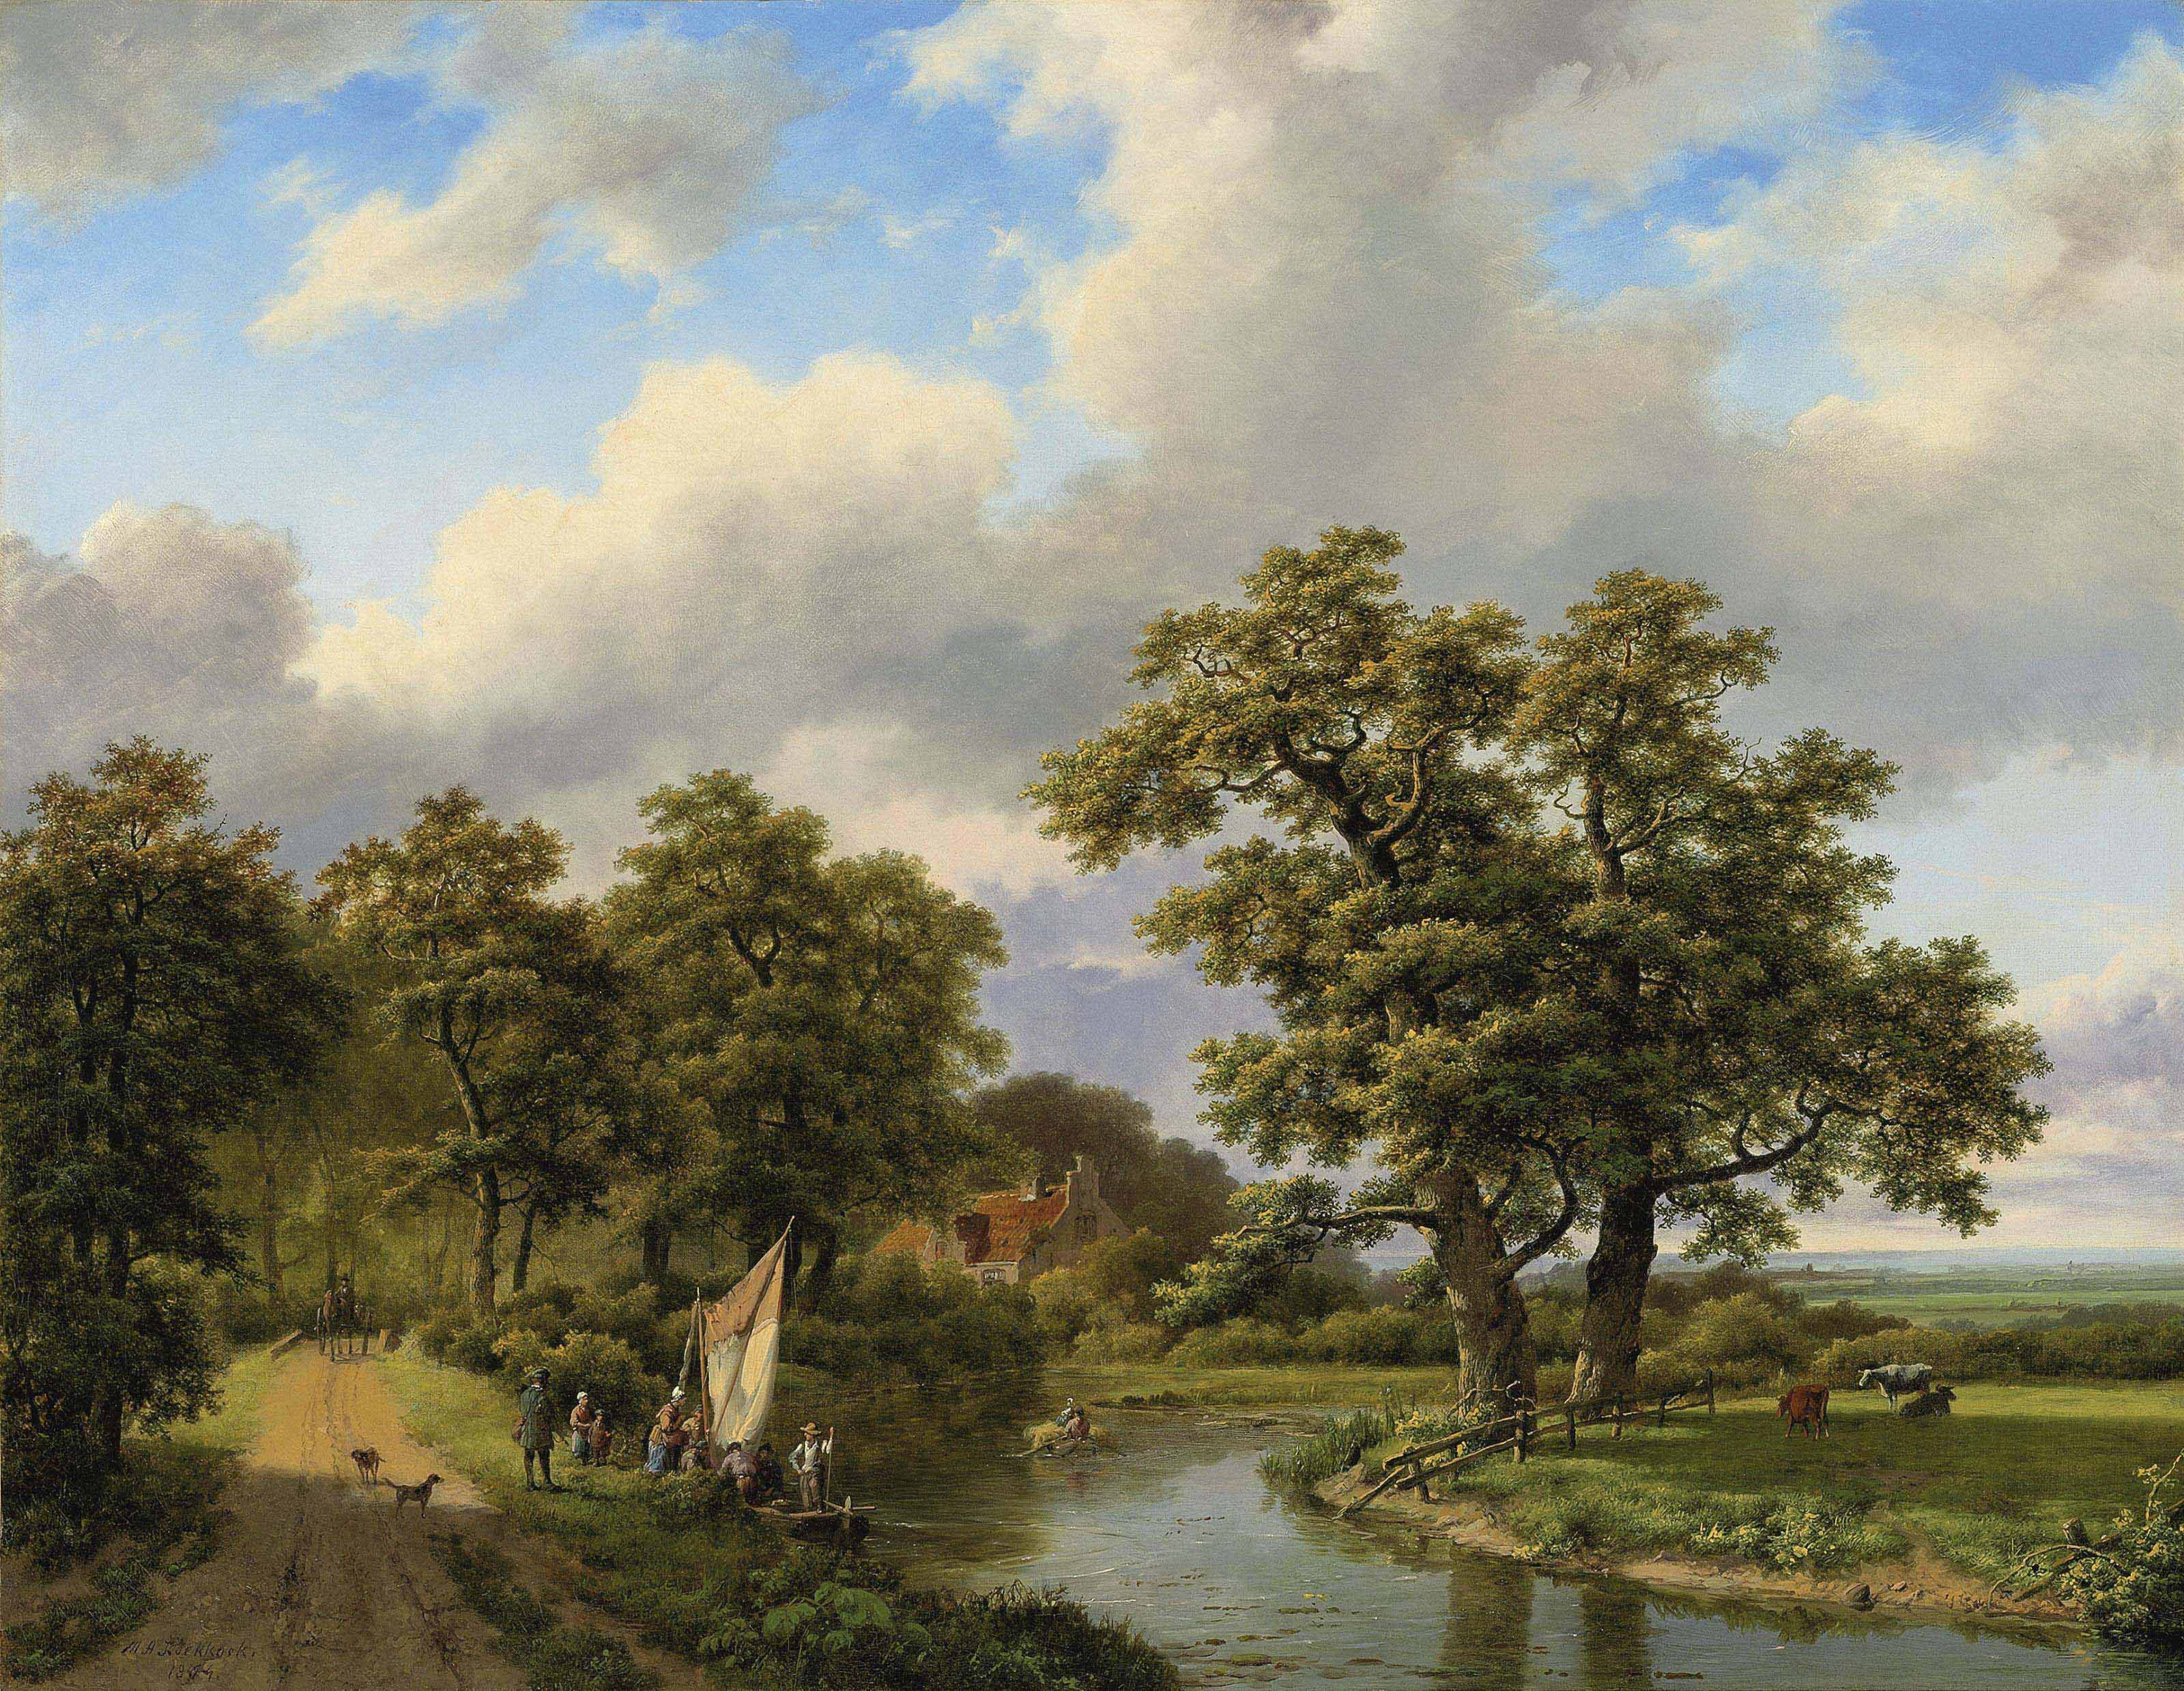 Wooded landscape with figures and cattle by a river